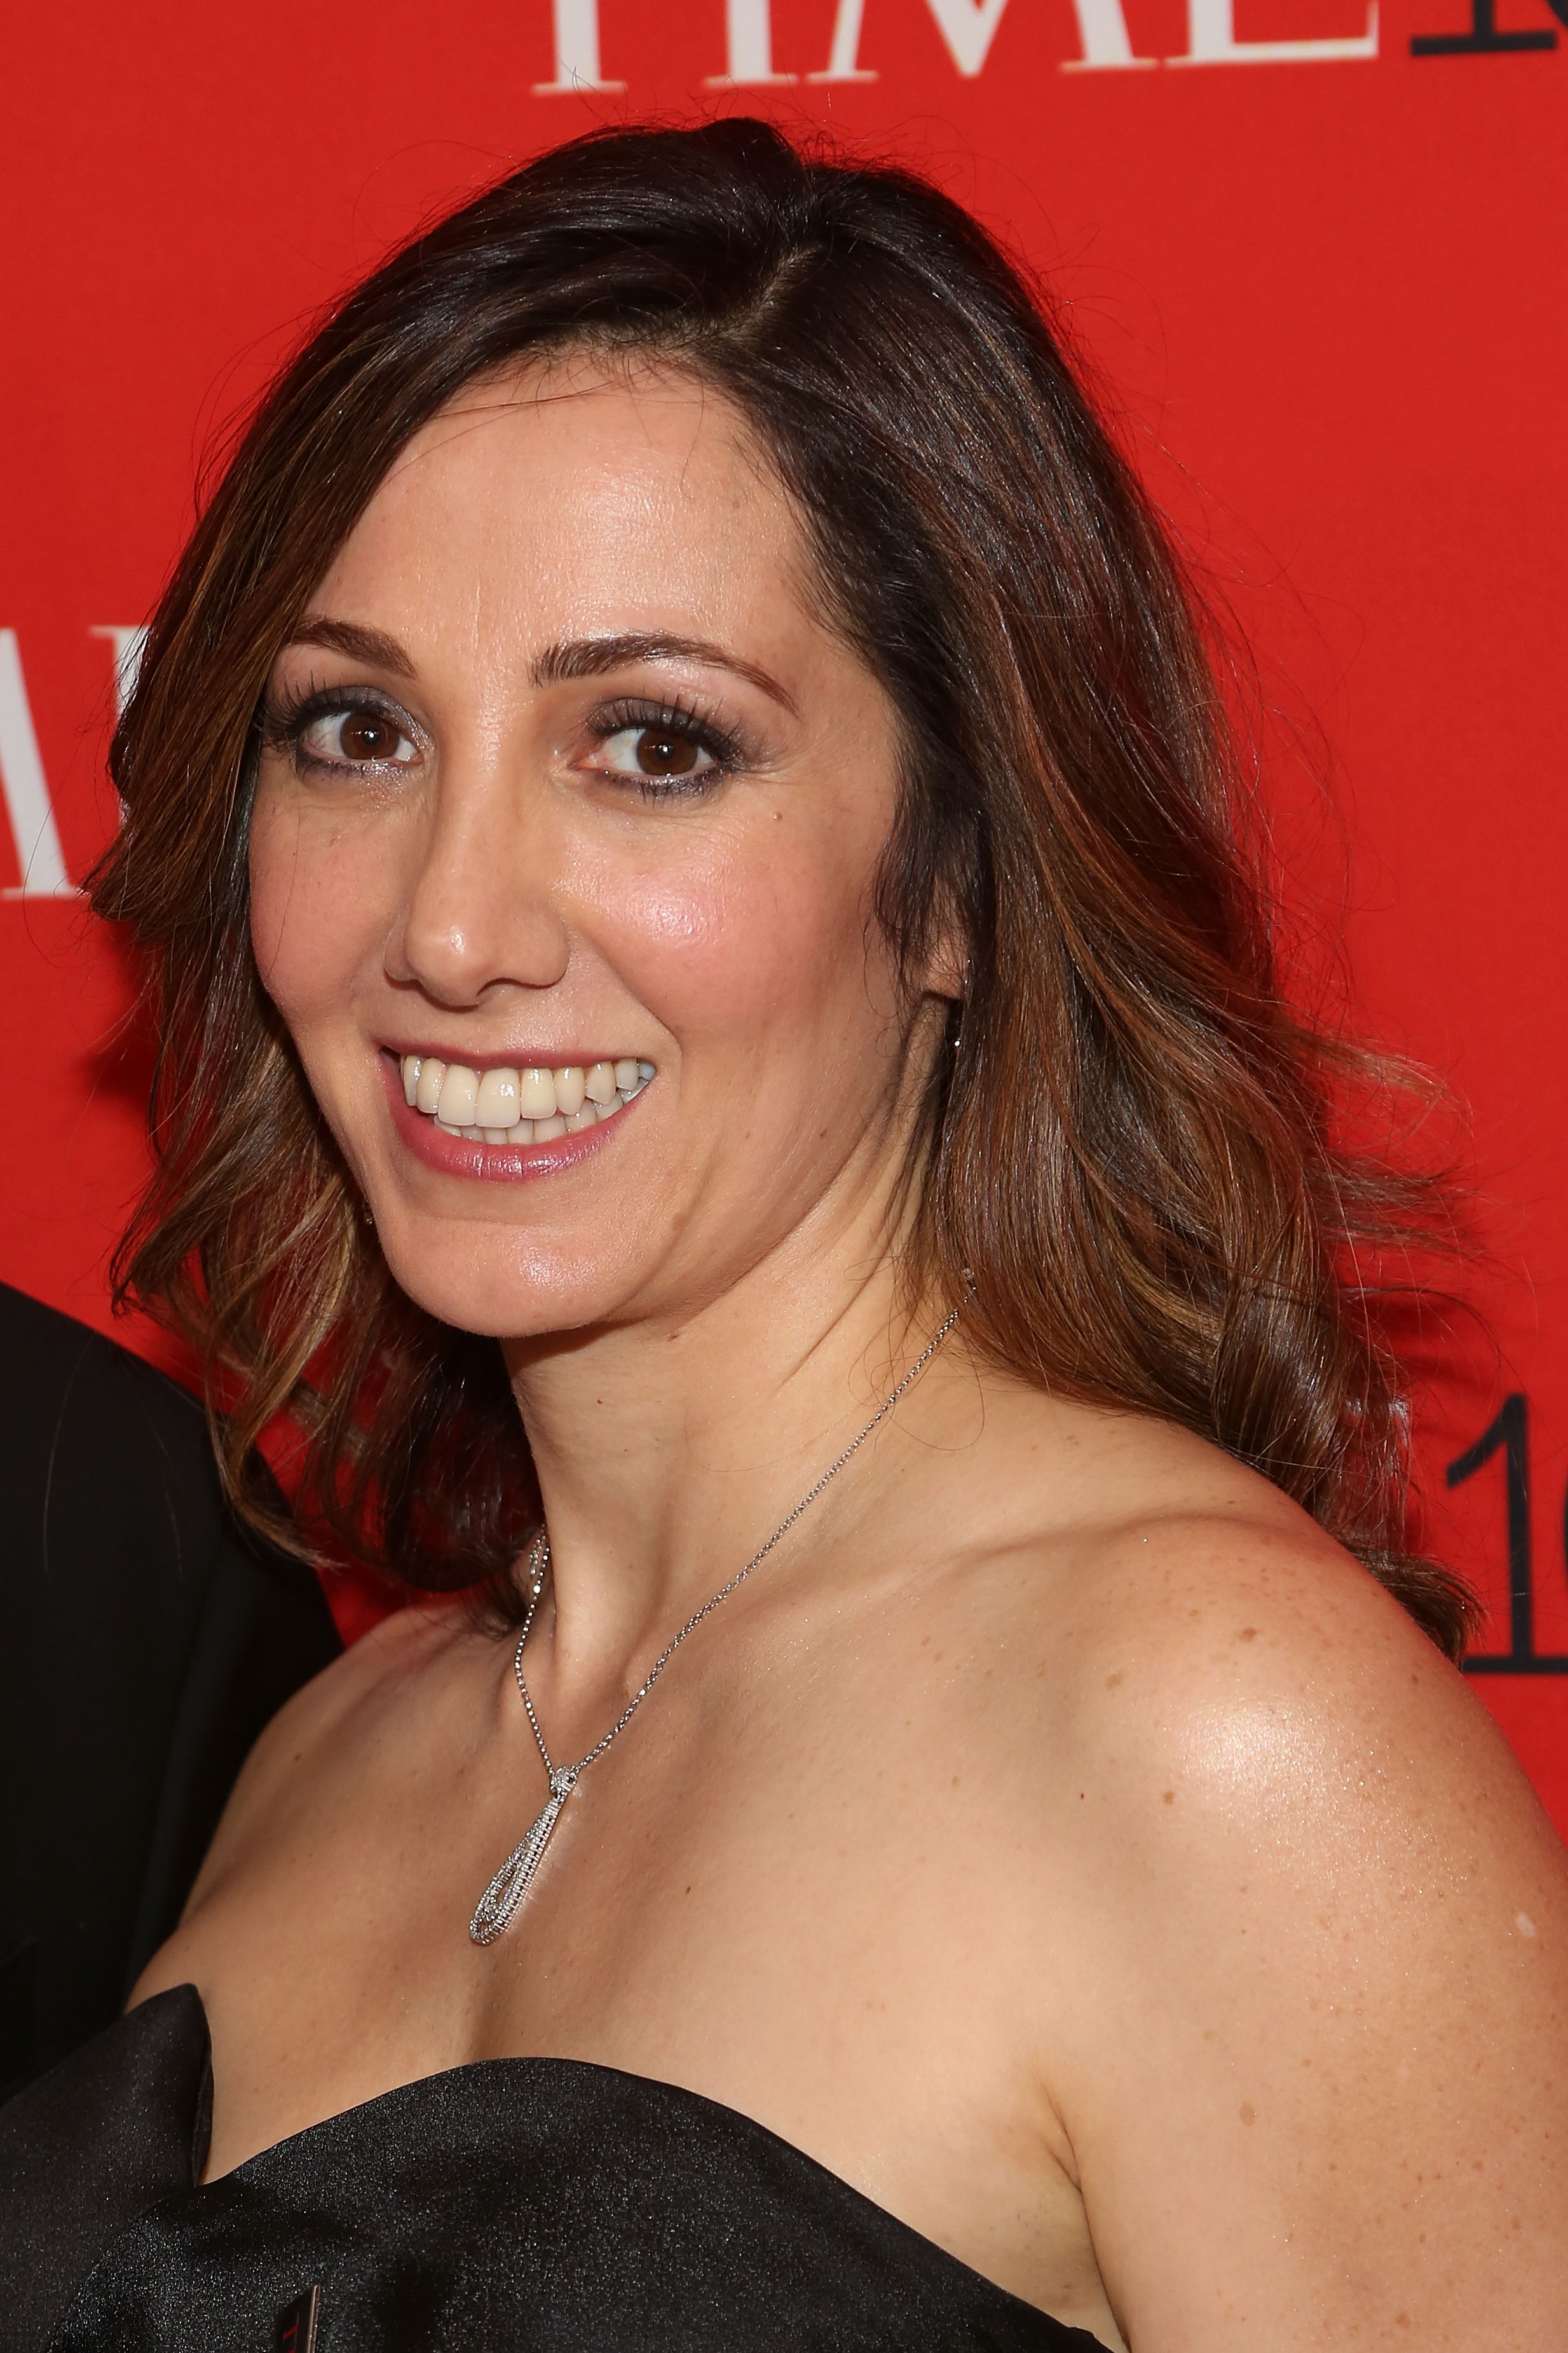 Evolutionary geneticist Pardis Sabeti attends the 2015 Time 100 Gala at Frederick P. Rose Hall, Jazz at Lincoln Center on April 21, 2015 in New York City.